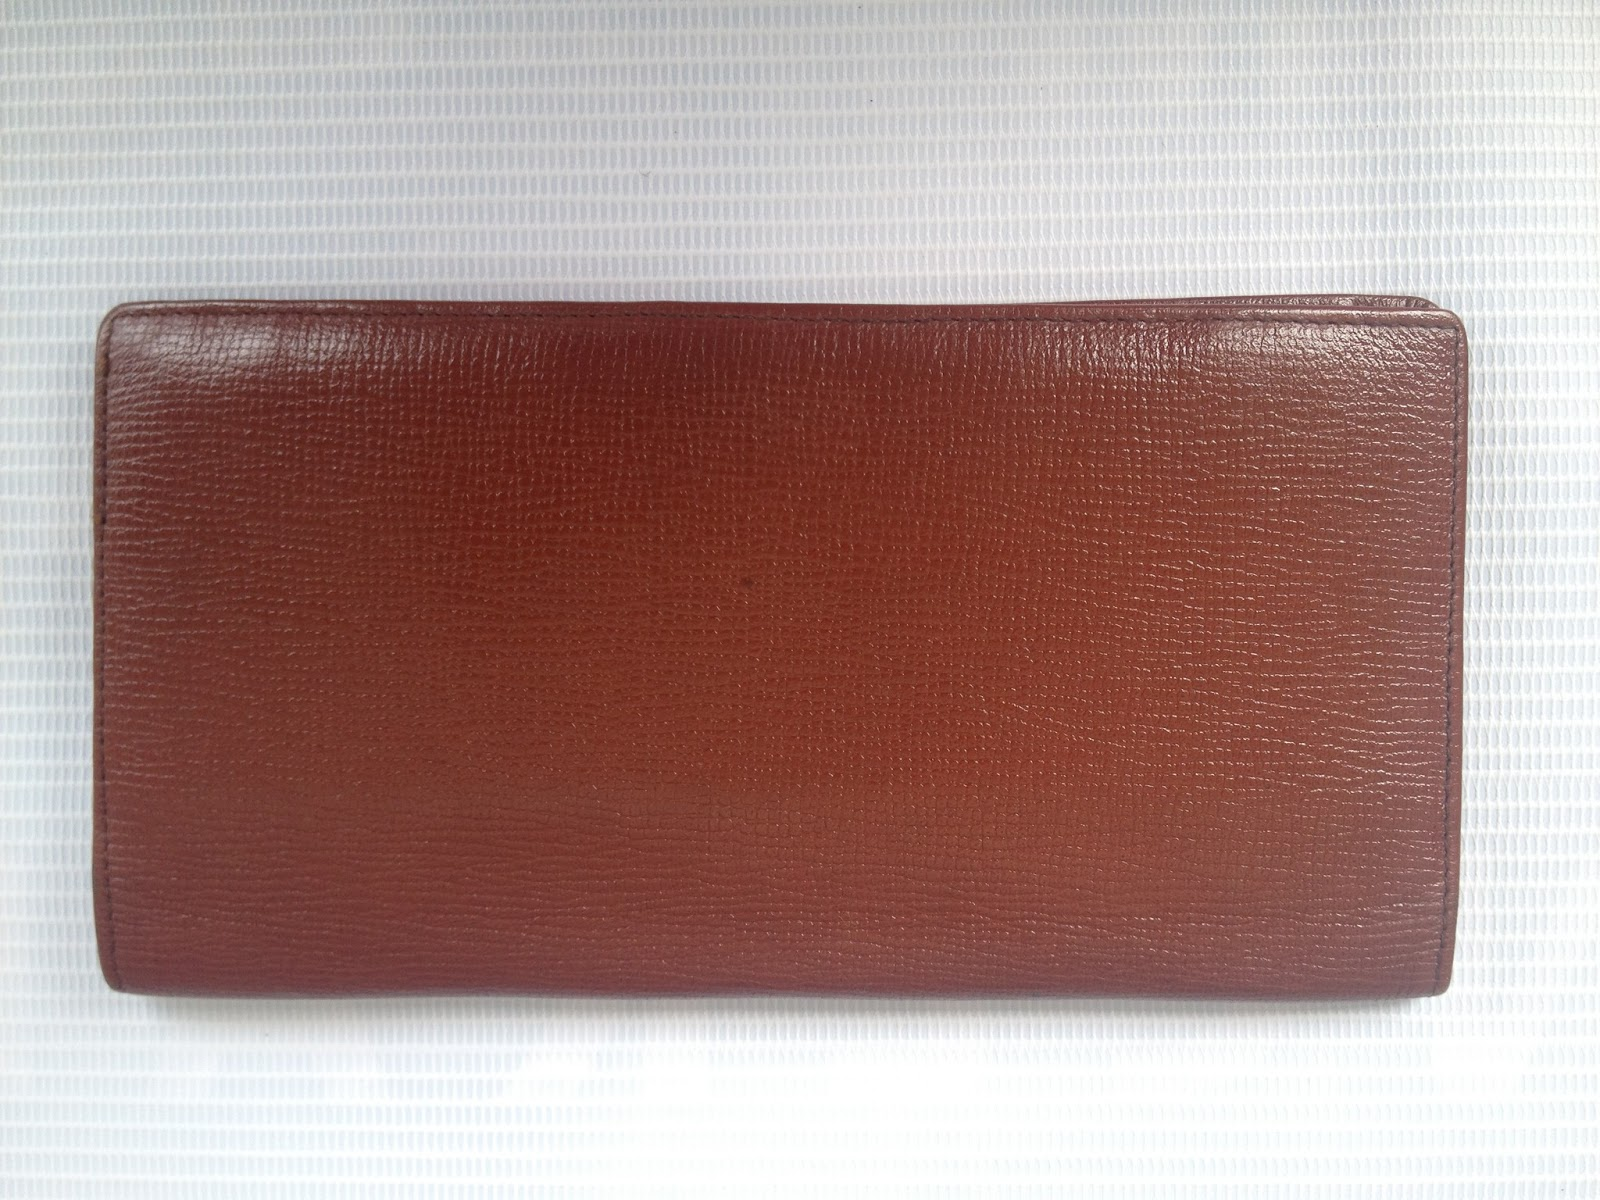 4ffc7bd078 NEGO BUNDLE (017-9263523)  Authentic GUY LAROCHE Brown Leather Long ...